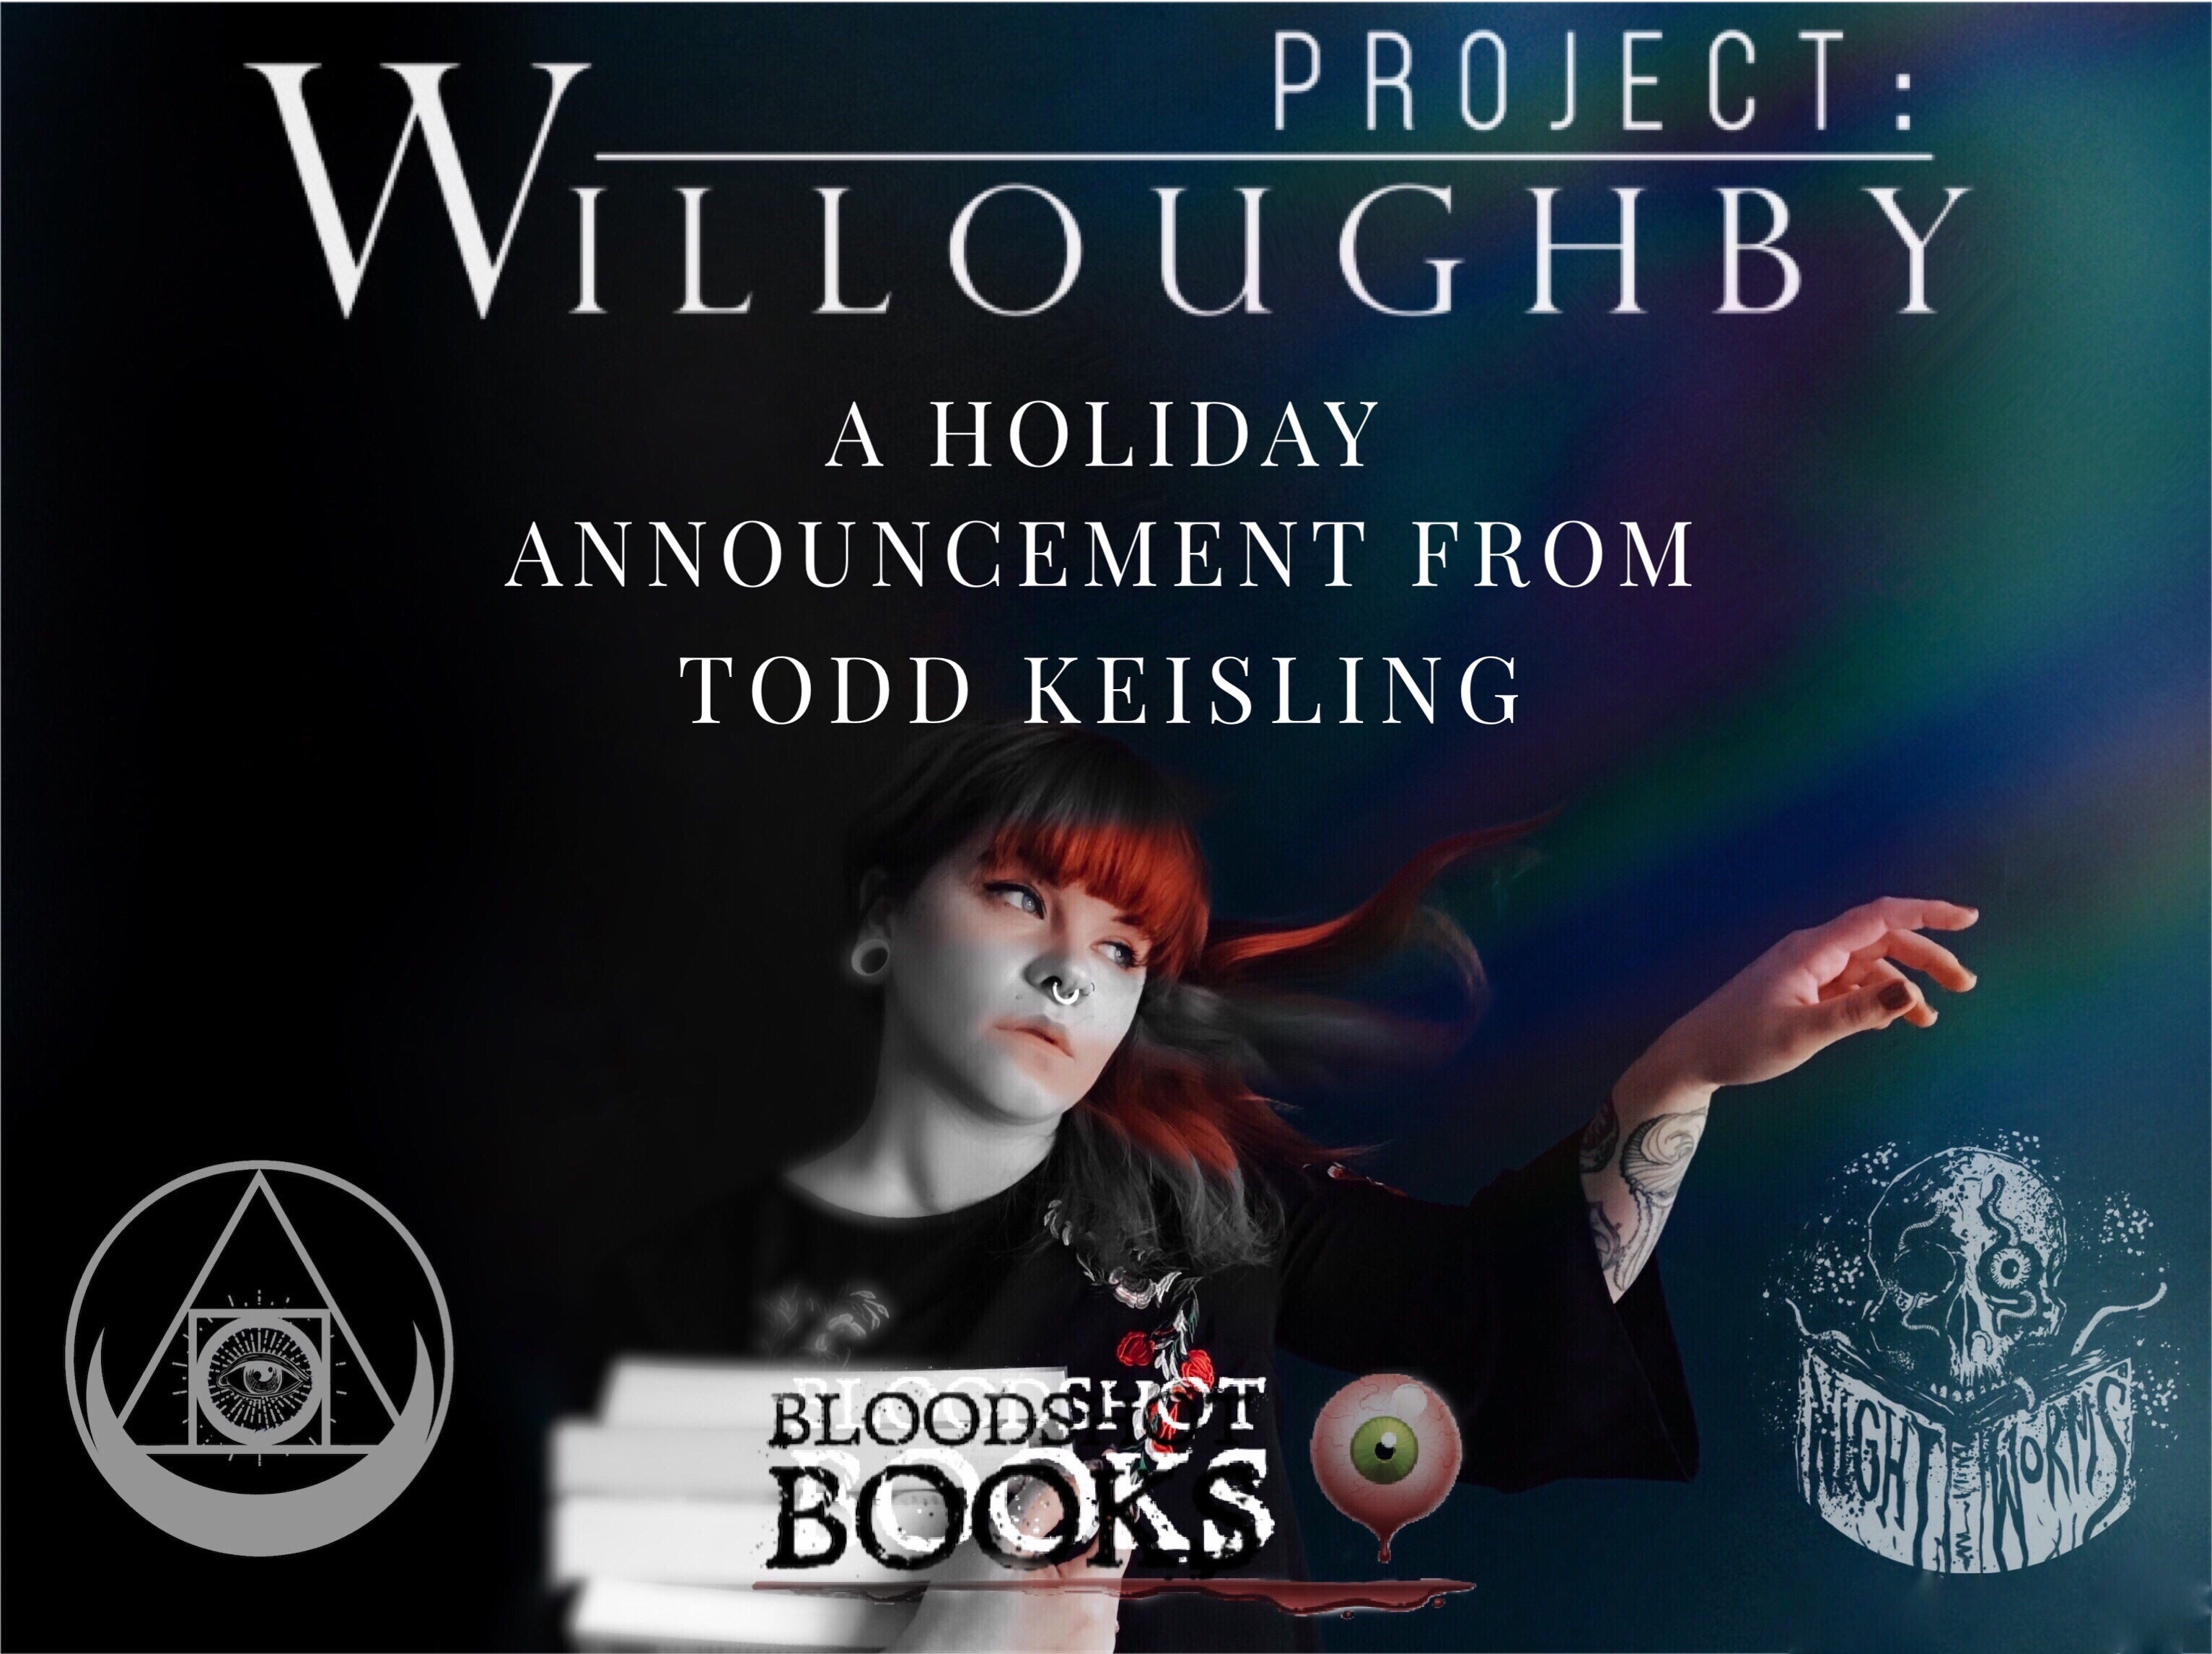 Project Willoughby: A Holiday Announcement From Todd Keisling